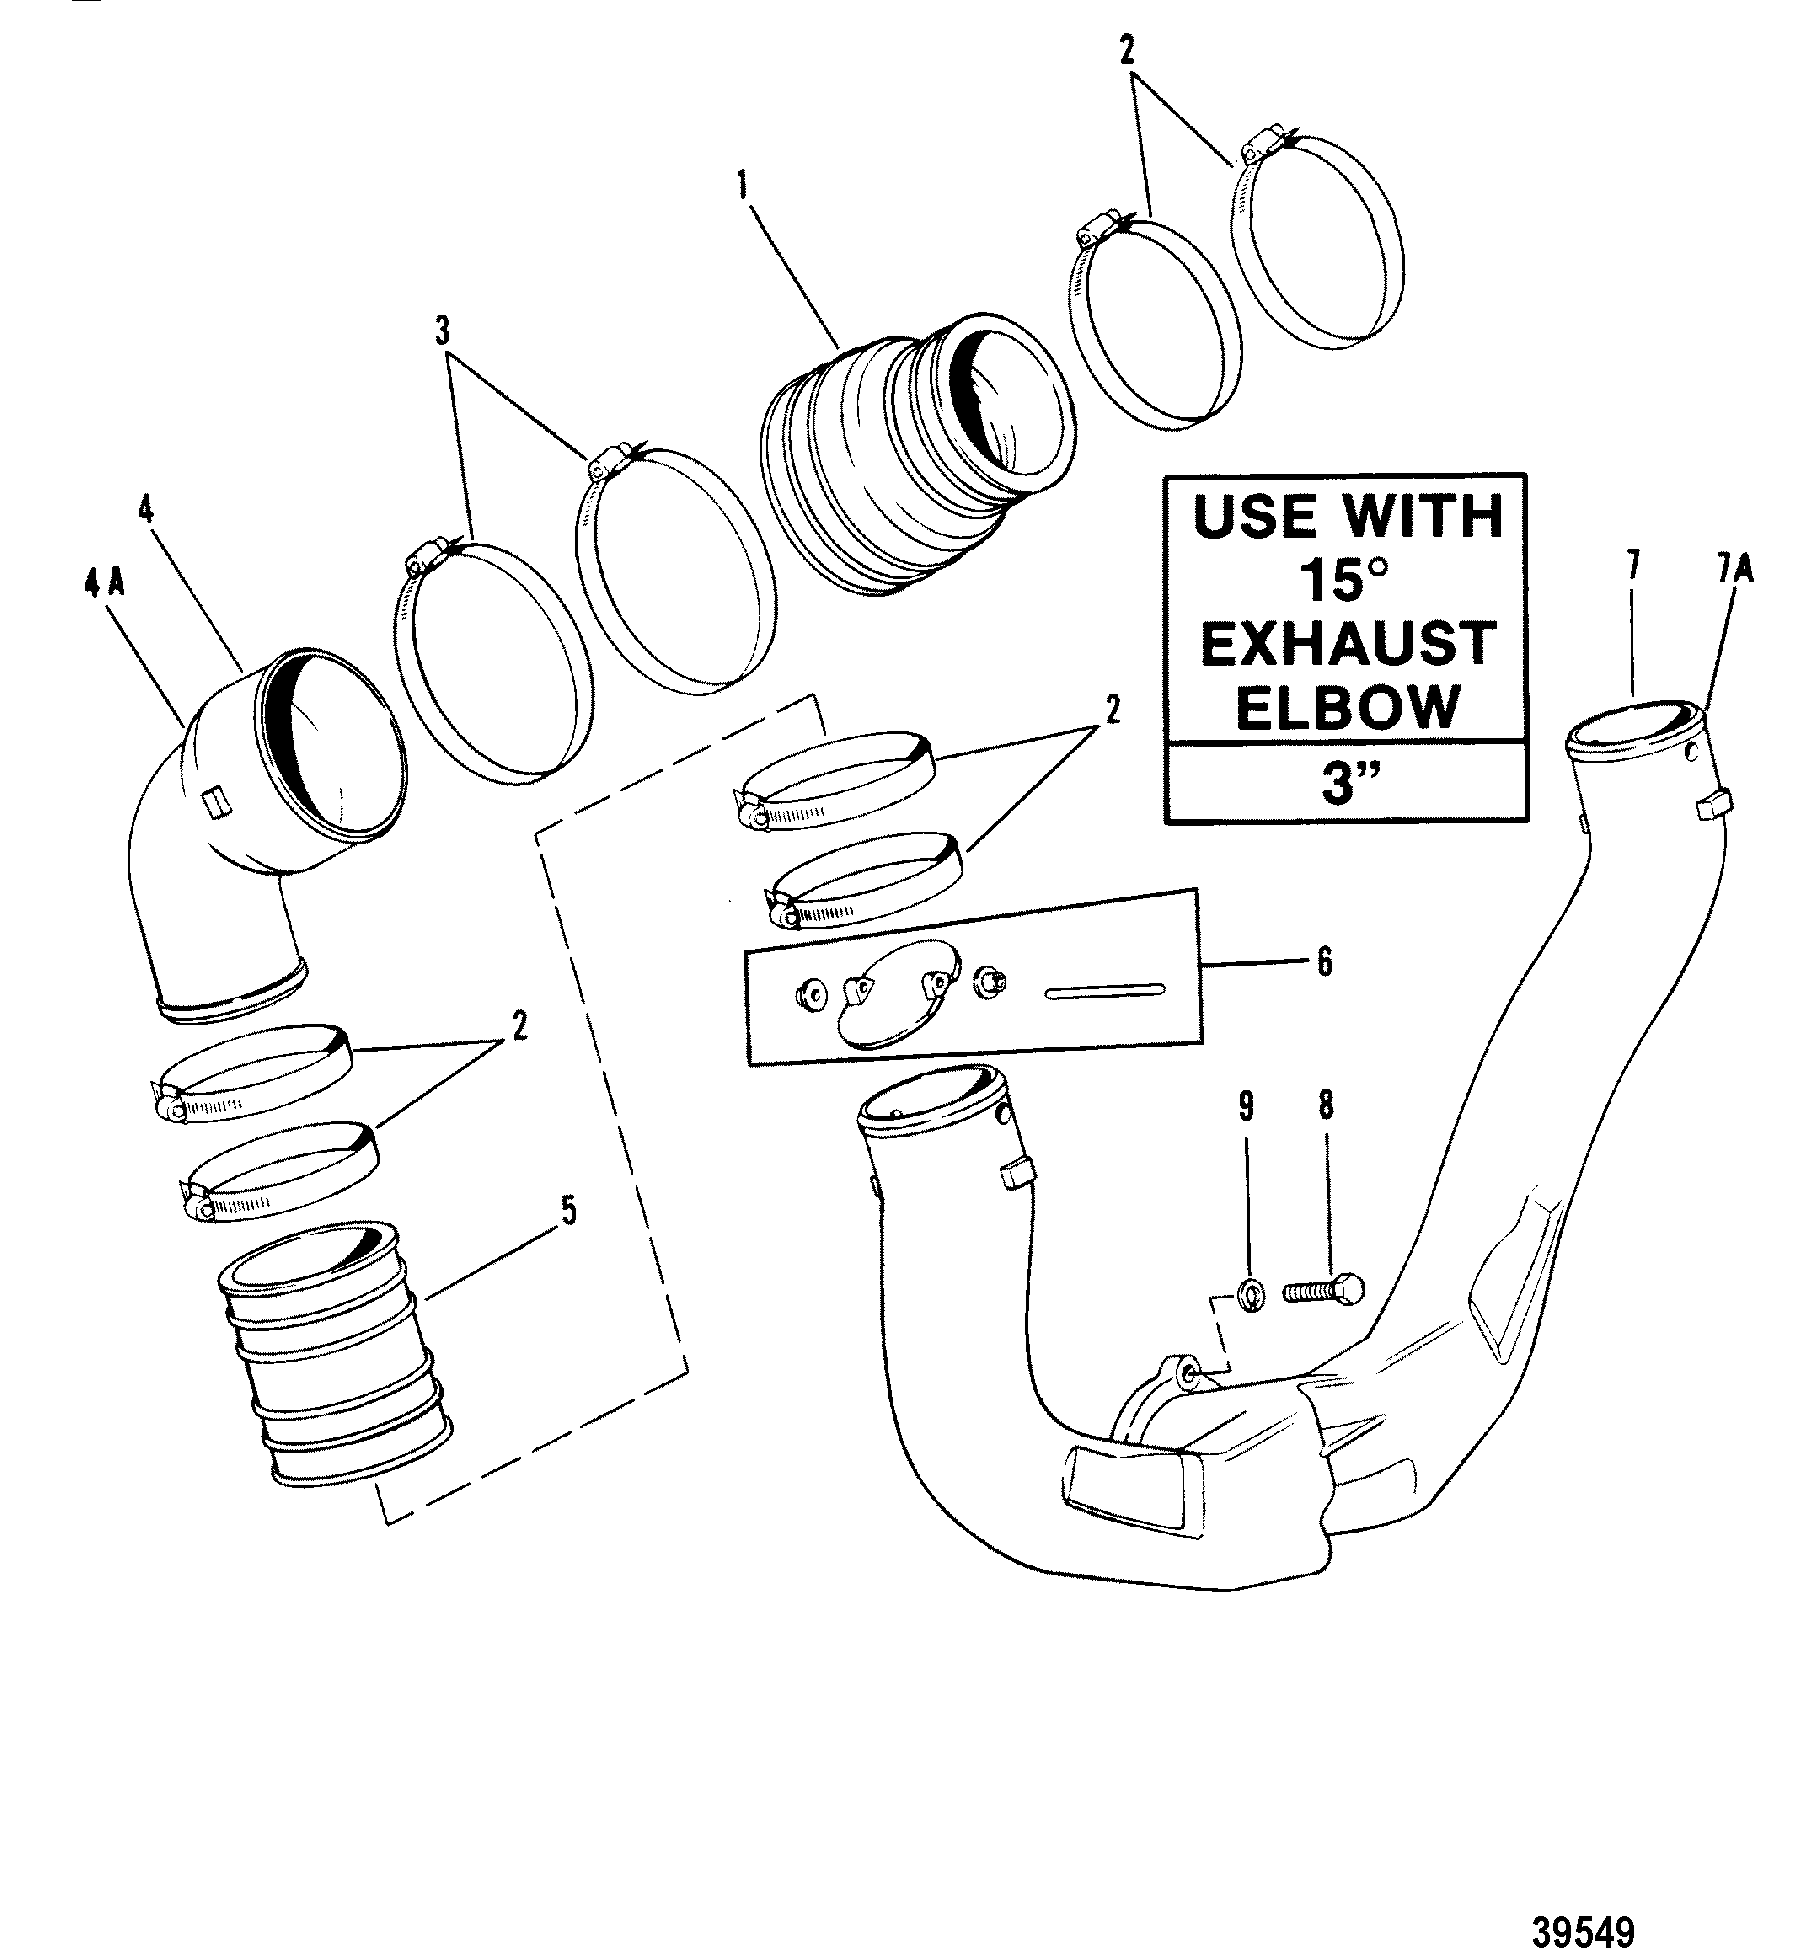 39549 exhaust system, use with 15 degree exhaust elbow for mercruiser 898